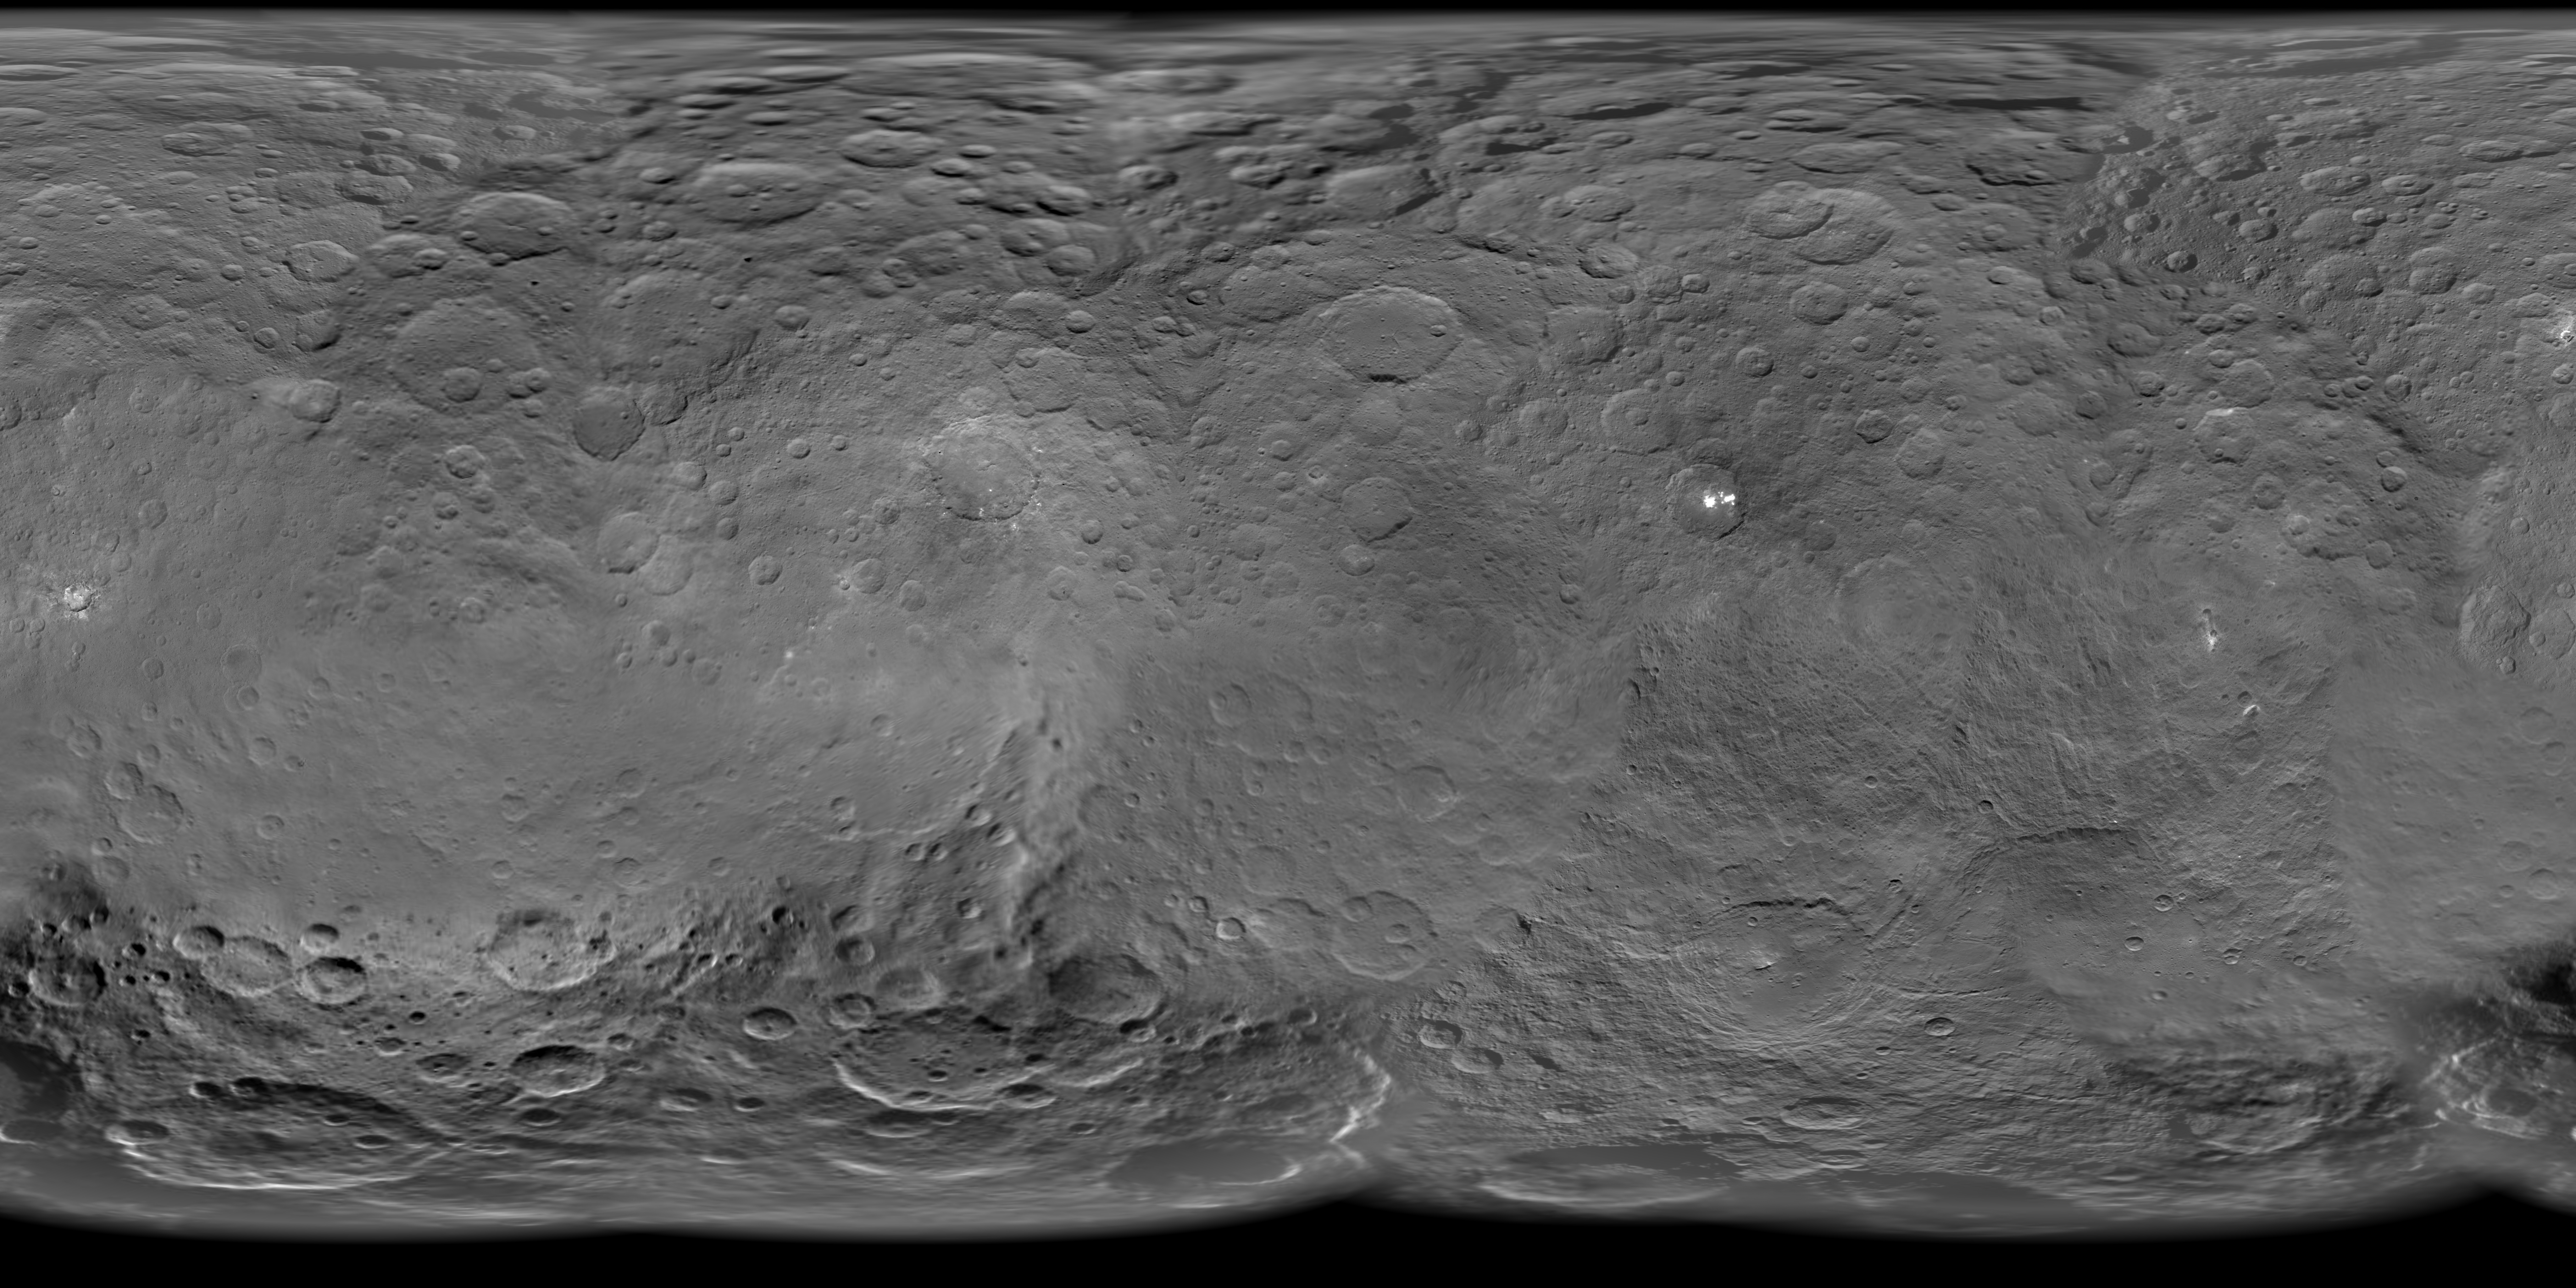 Steve Albers' Planetary Maps (Global Images)